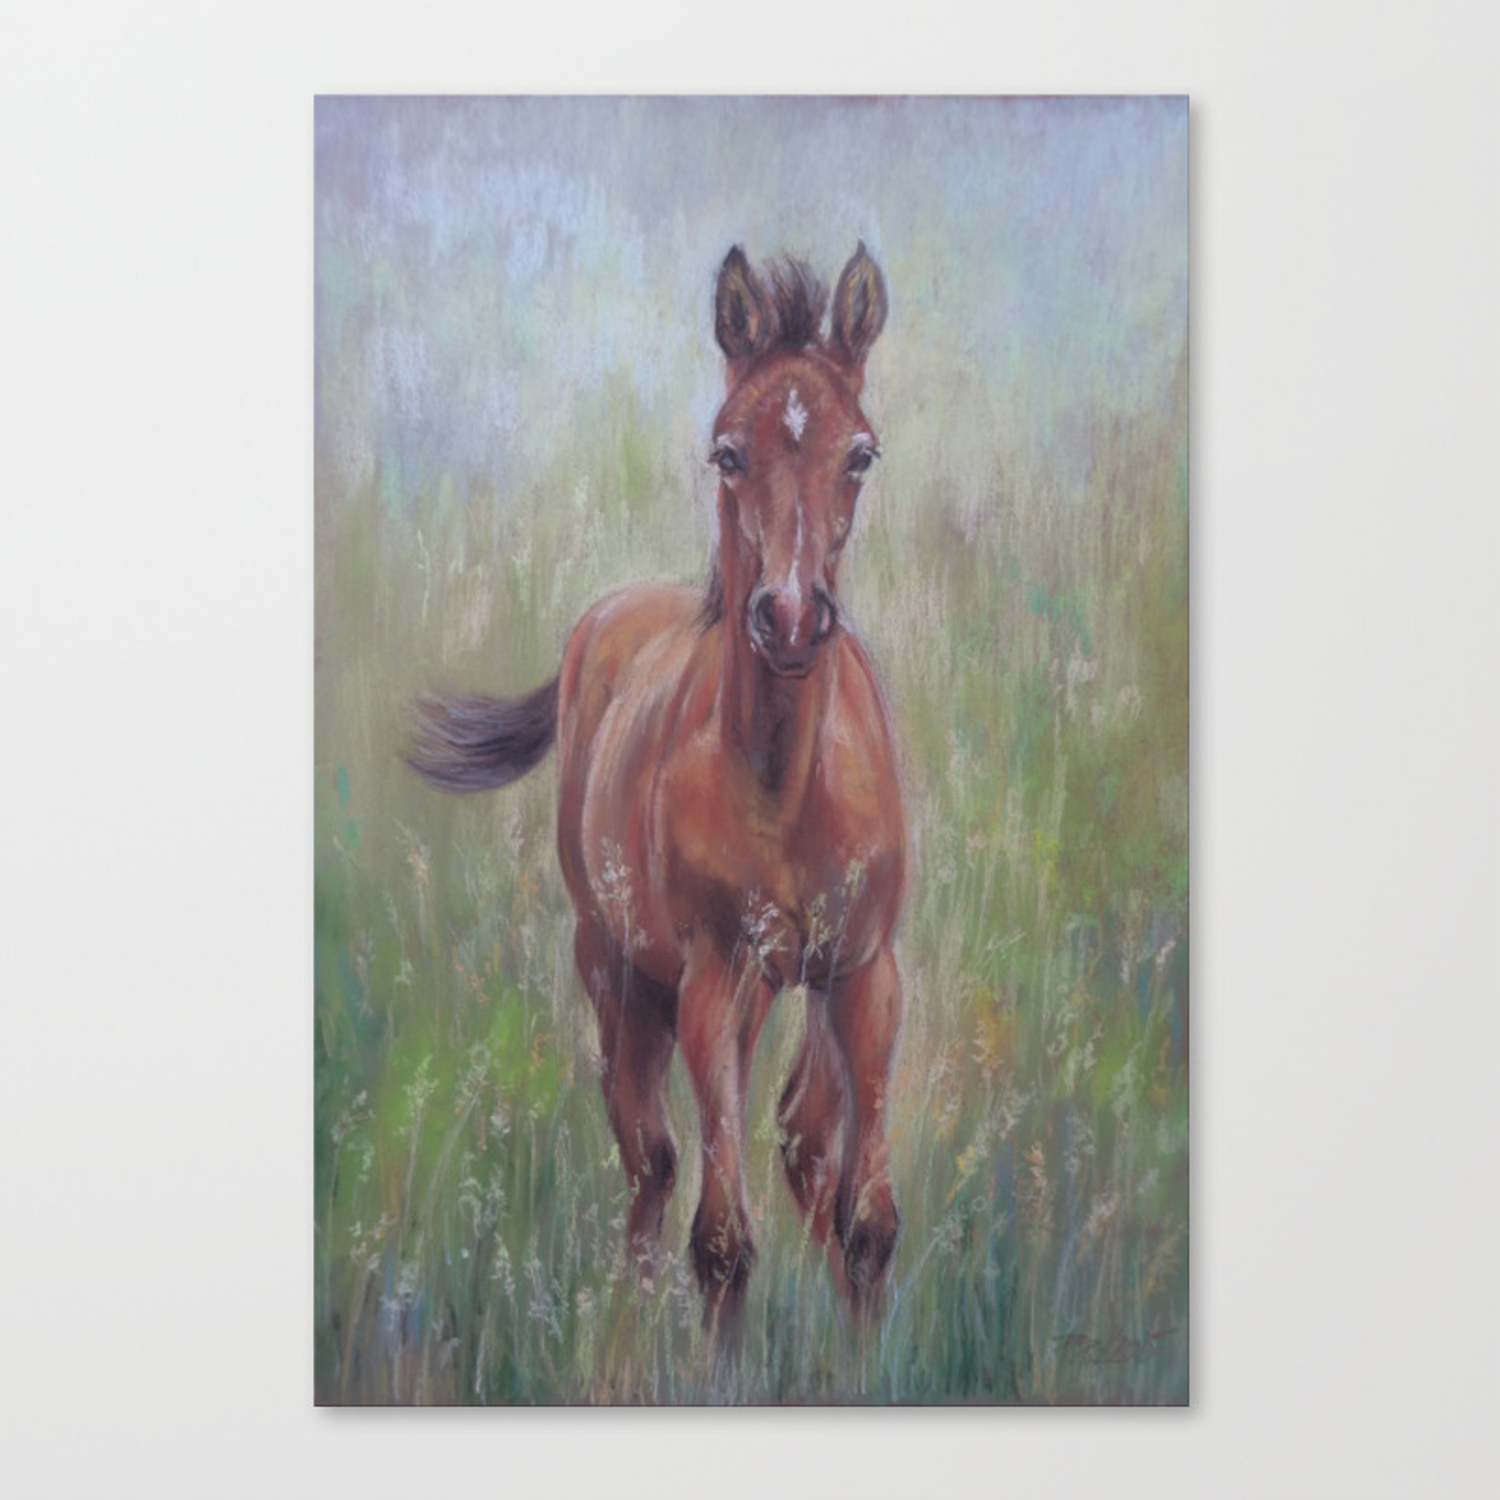 Baby Horse Foal In The Spring Meadow Cute Horse Portrait Pastel Drawing Canvas Print By Canisart Society6